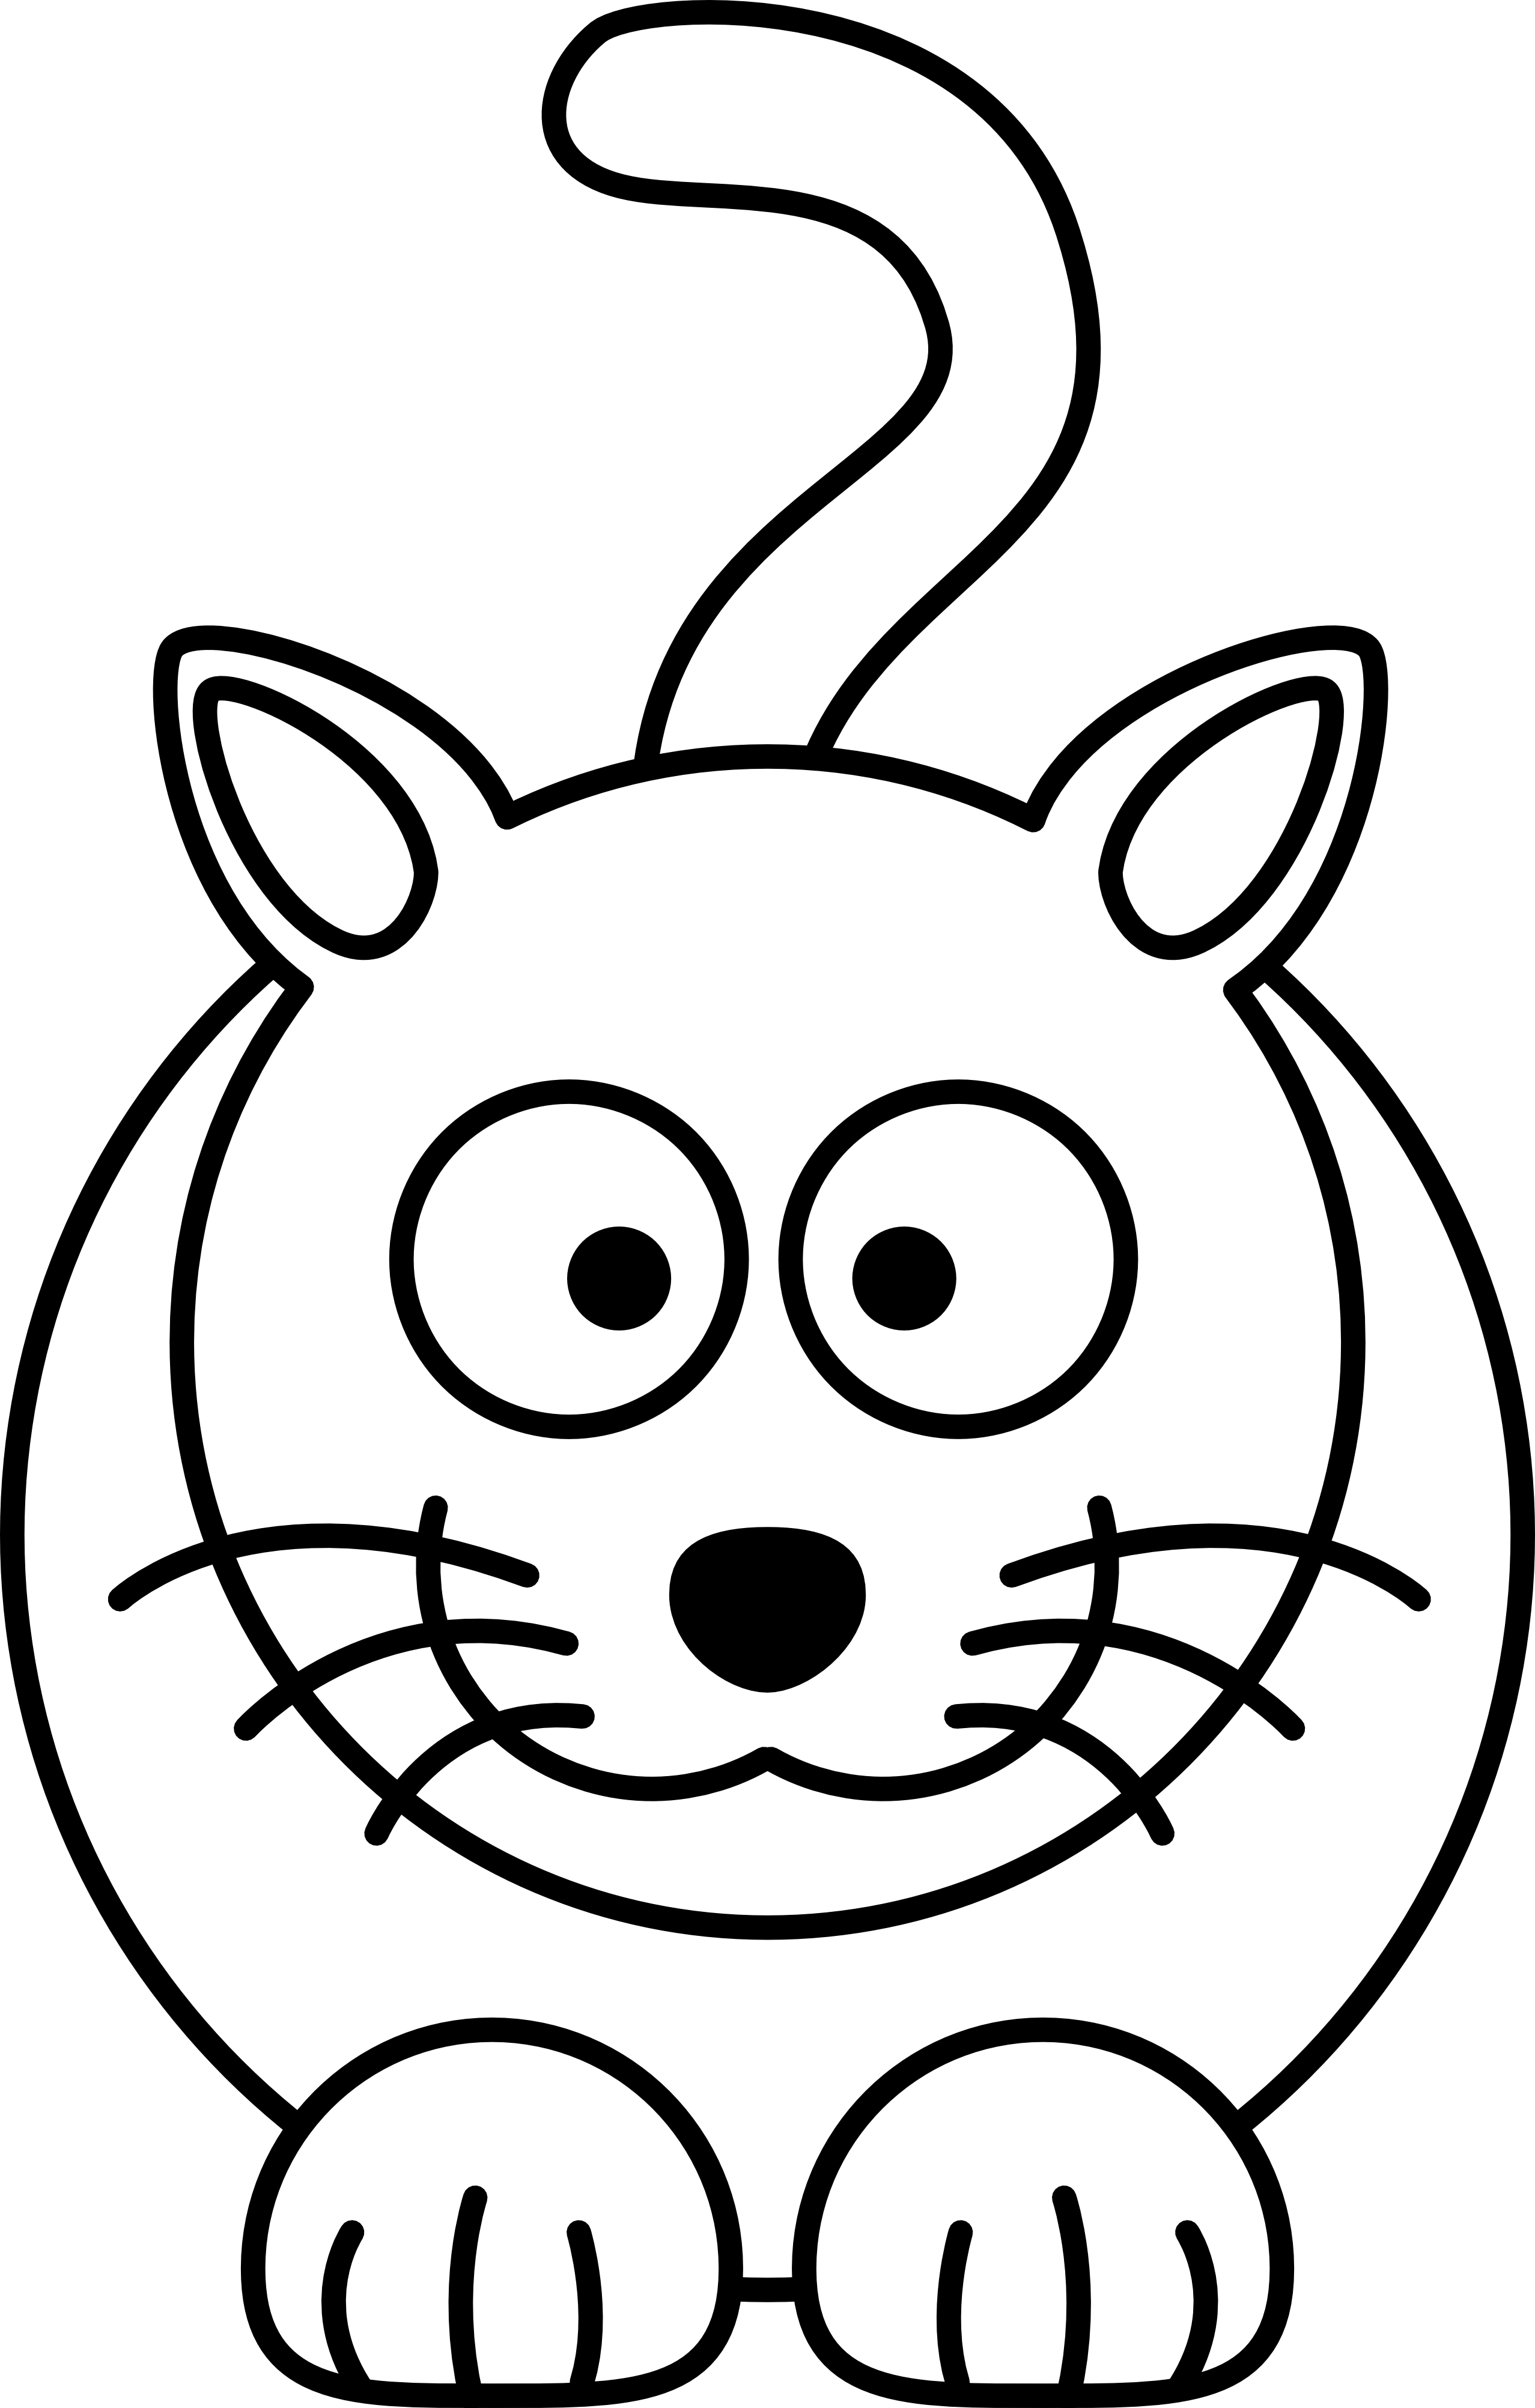 Cat printable clipart clipart free Kitten Face Drawing at GetDrawings.com | Free for personal use ... clipart free